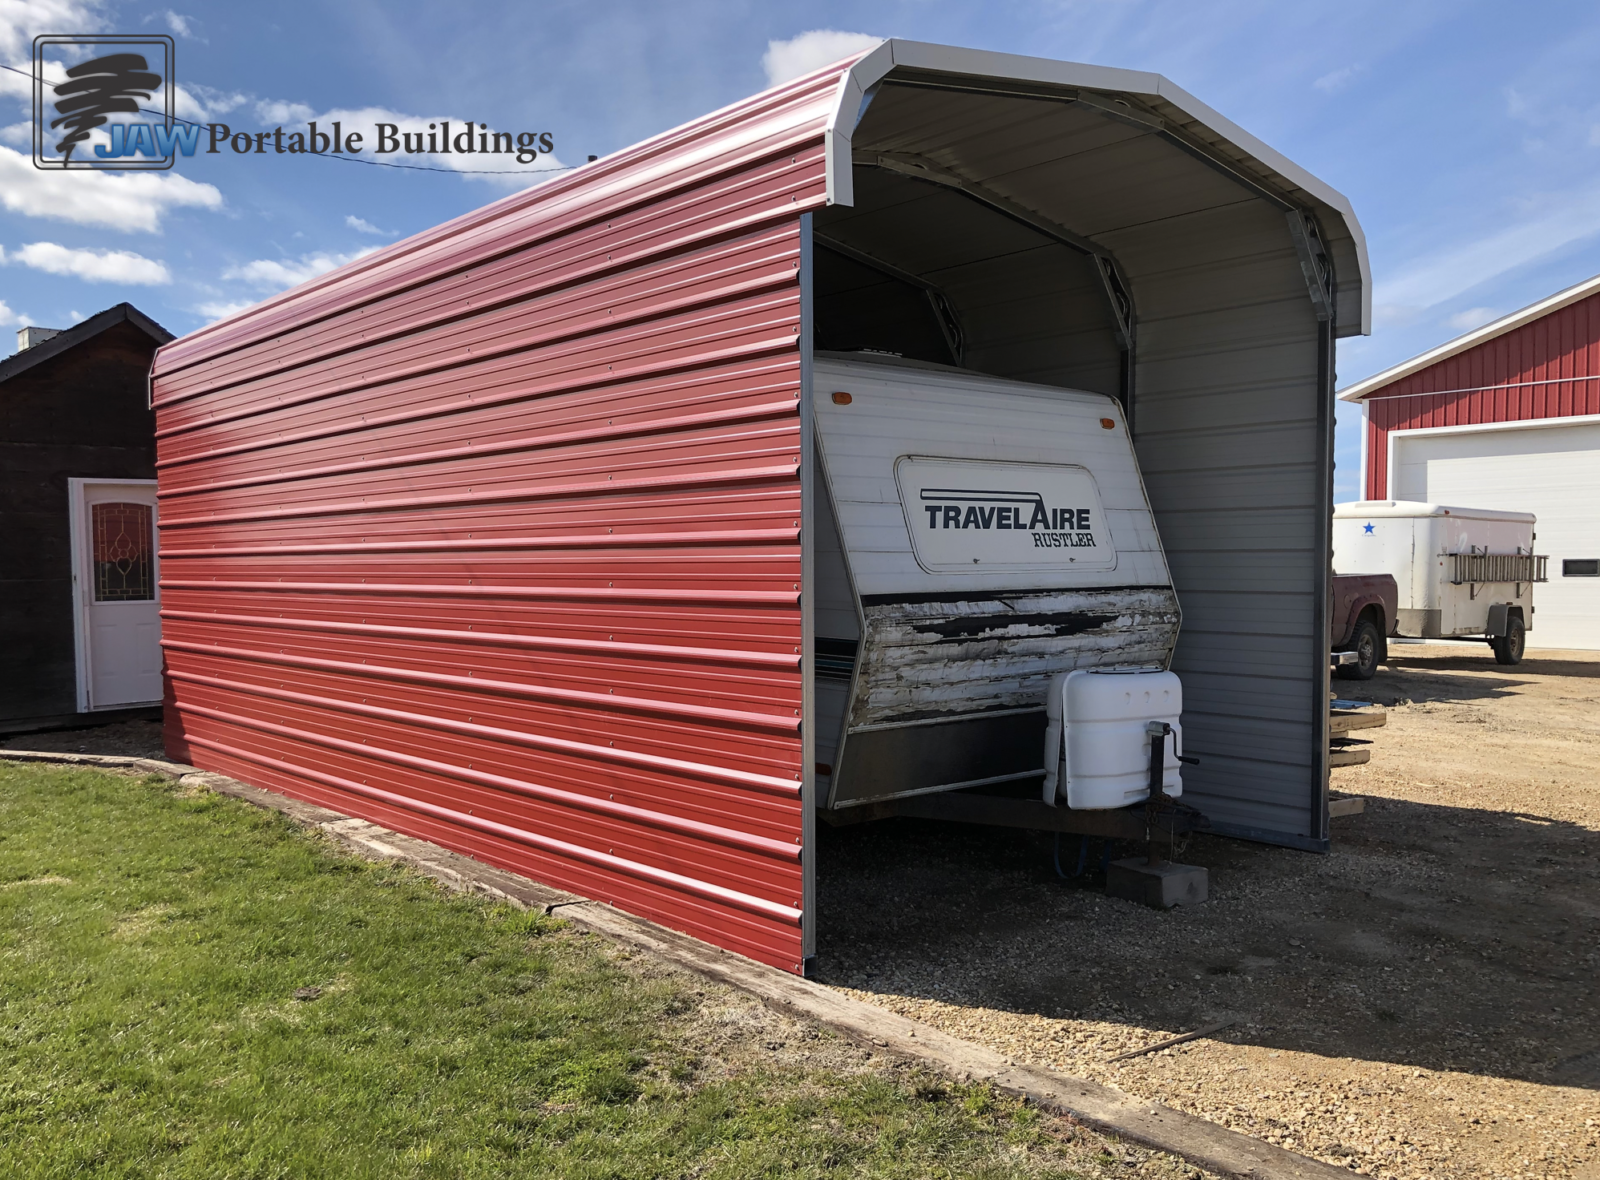 Customized Travel Trailer Shelter Ideas - JAW Portable Buildings